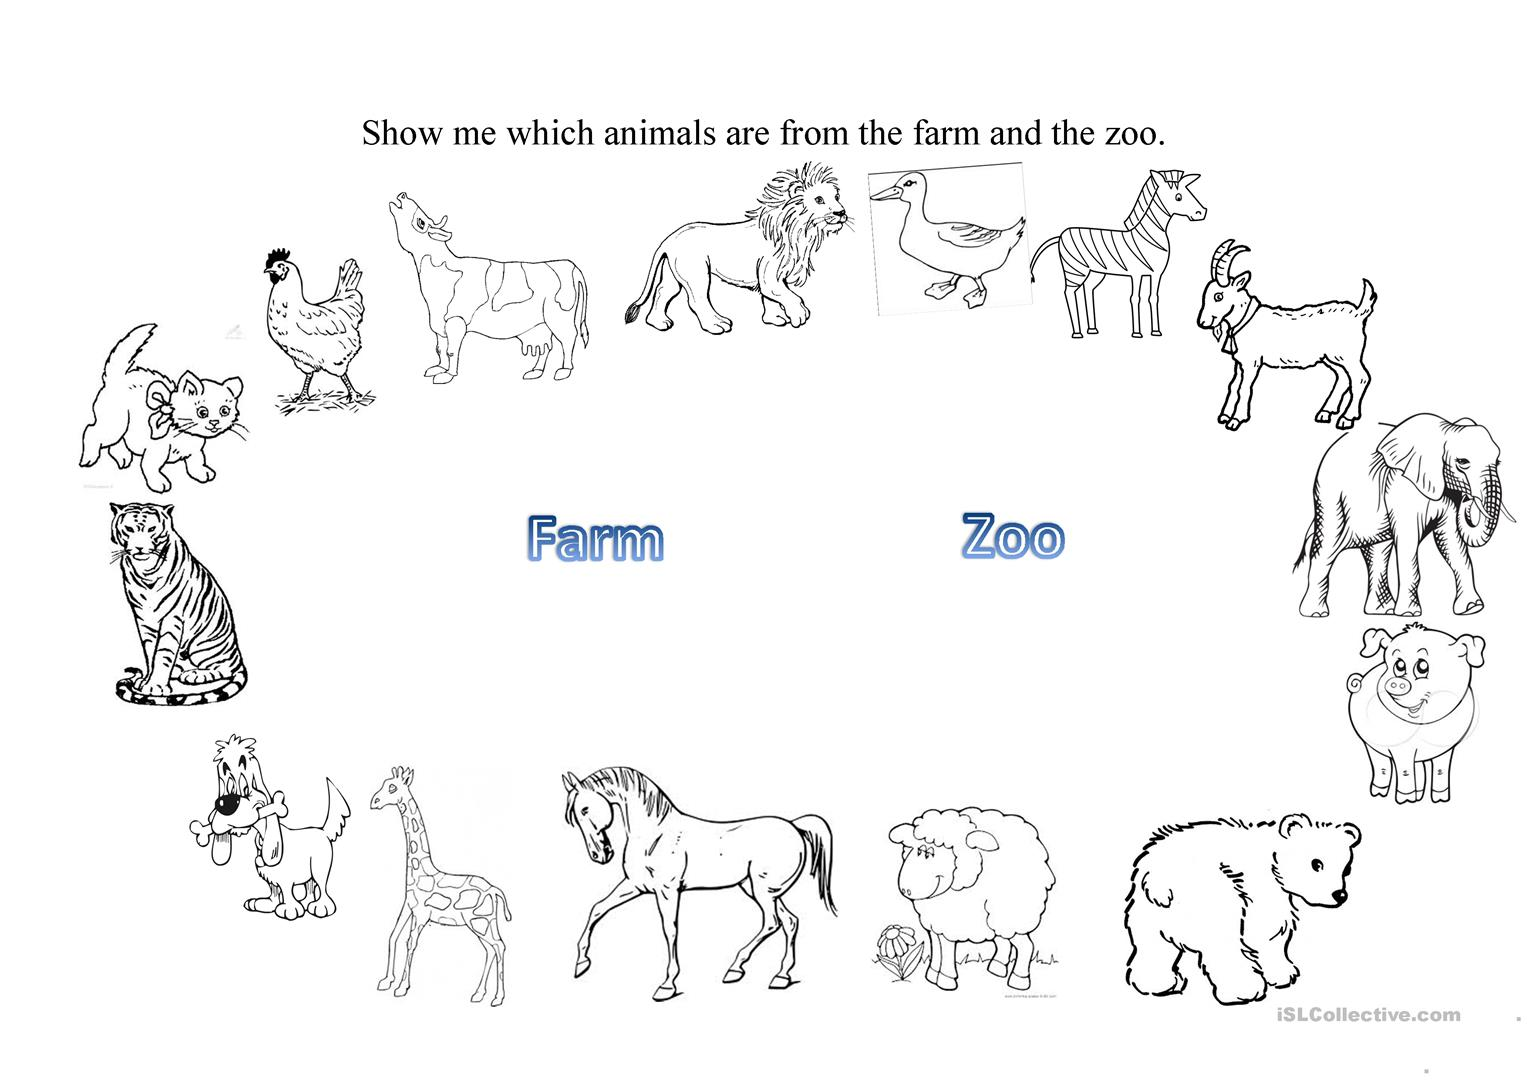 farm and zoo animals worksheet free esl printable worksheets made by teachers. Black Bedroom Furniture Sets. Home Design Ideas